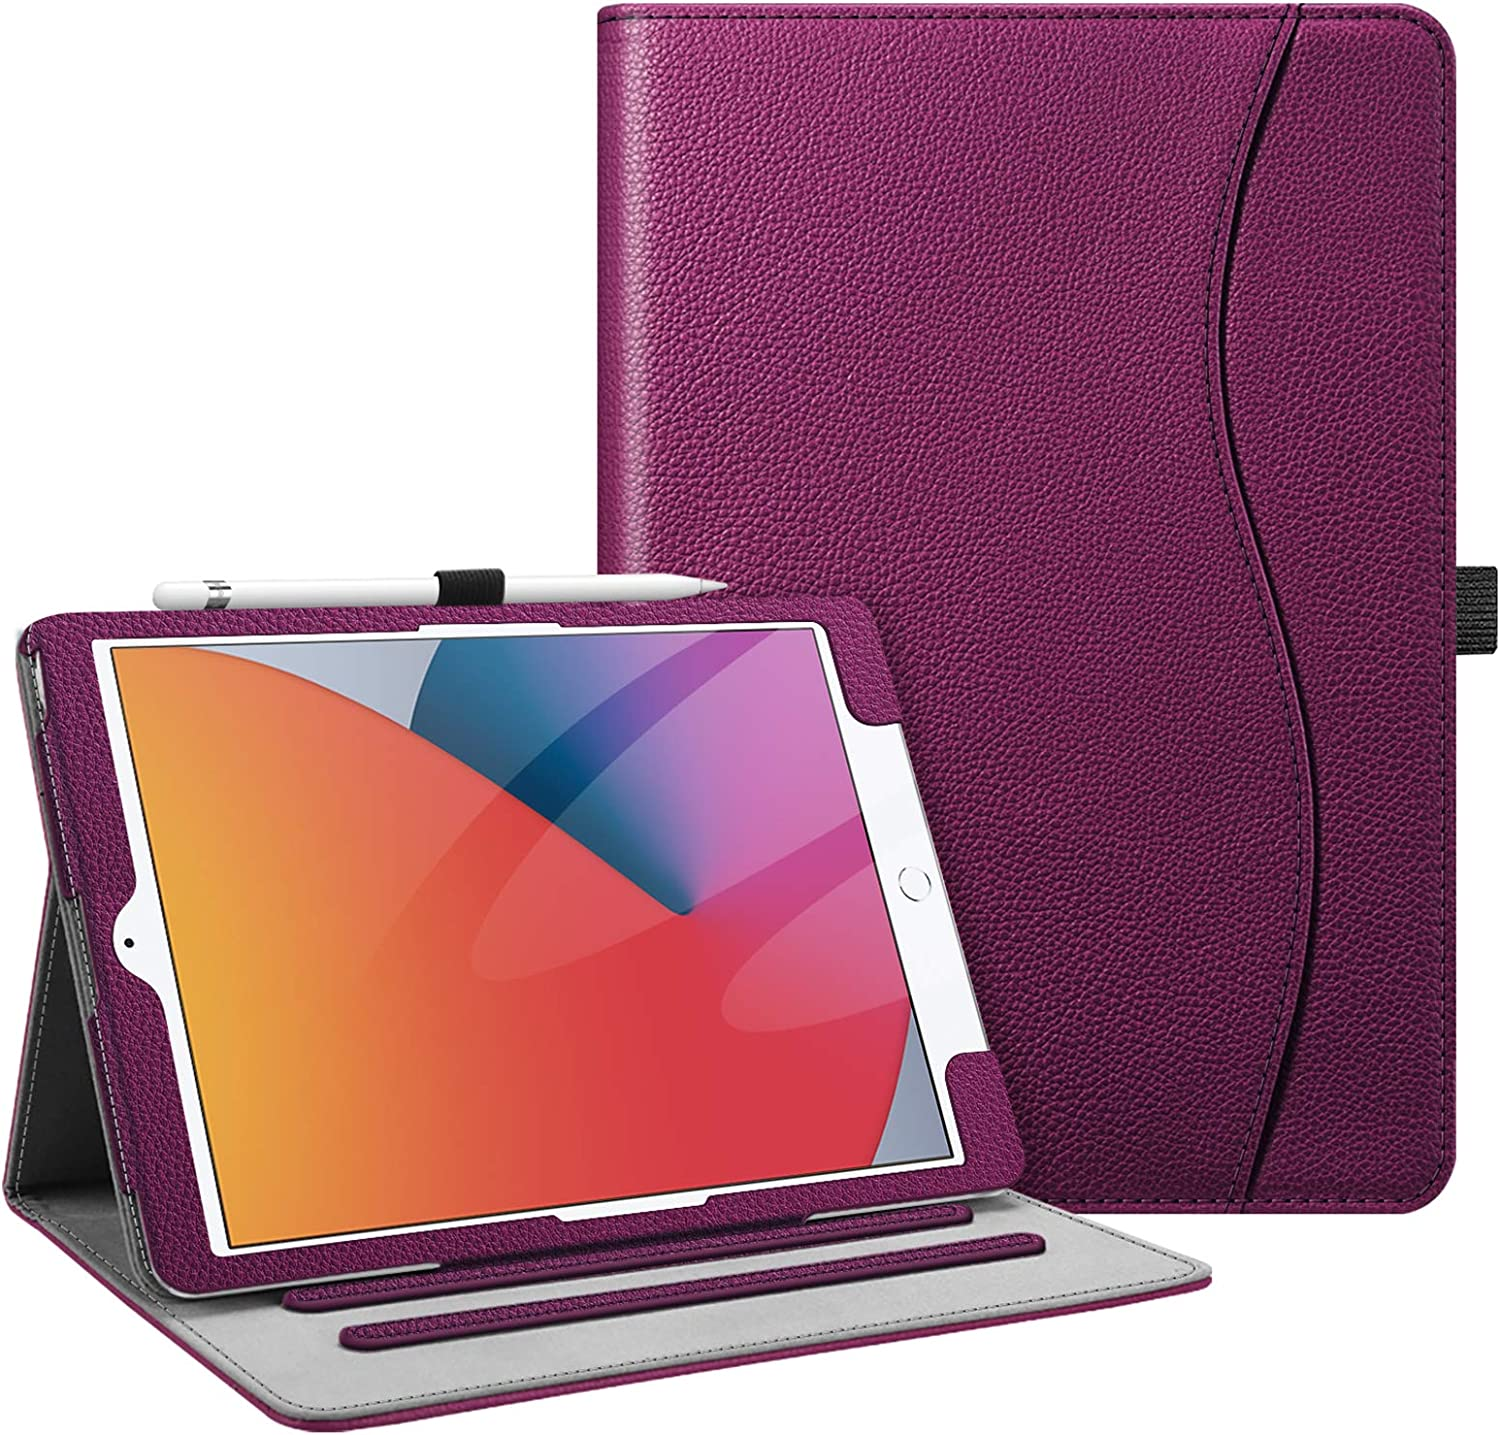 Fintie Case for New iPad 8th Gen (2020) / 7th Generation (2019) 10.2 Inch - [Corner Protection] Multi-Angle Viewing Folio Stand Cover with Pocket, Pencil Holder, Auto Wake/Sleep, Purple: Computers & Accessories